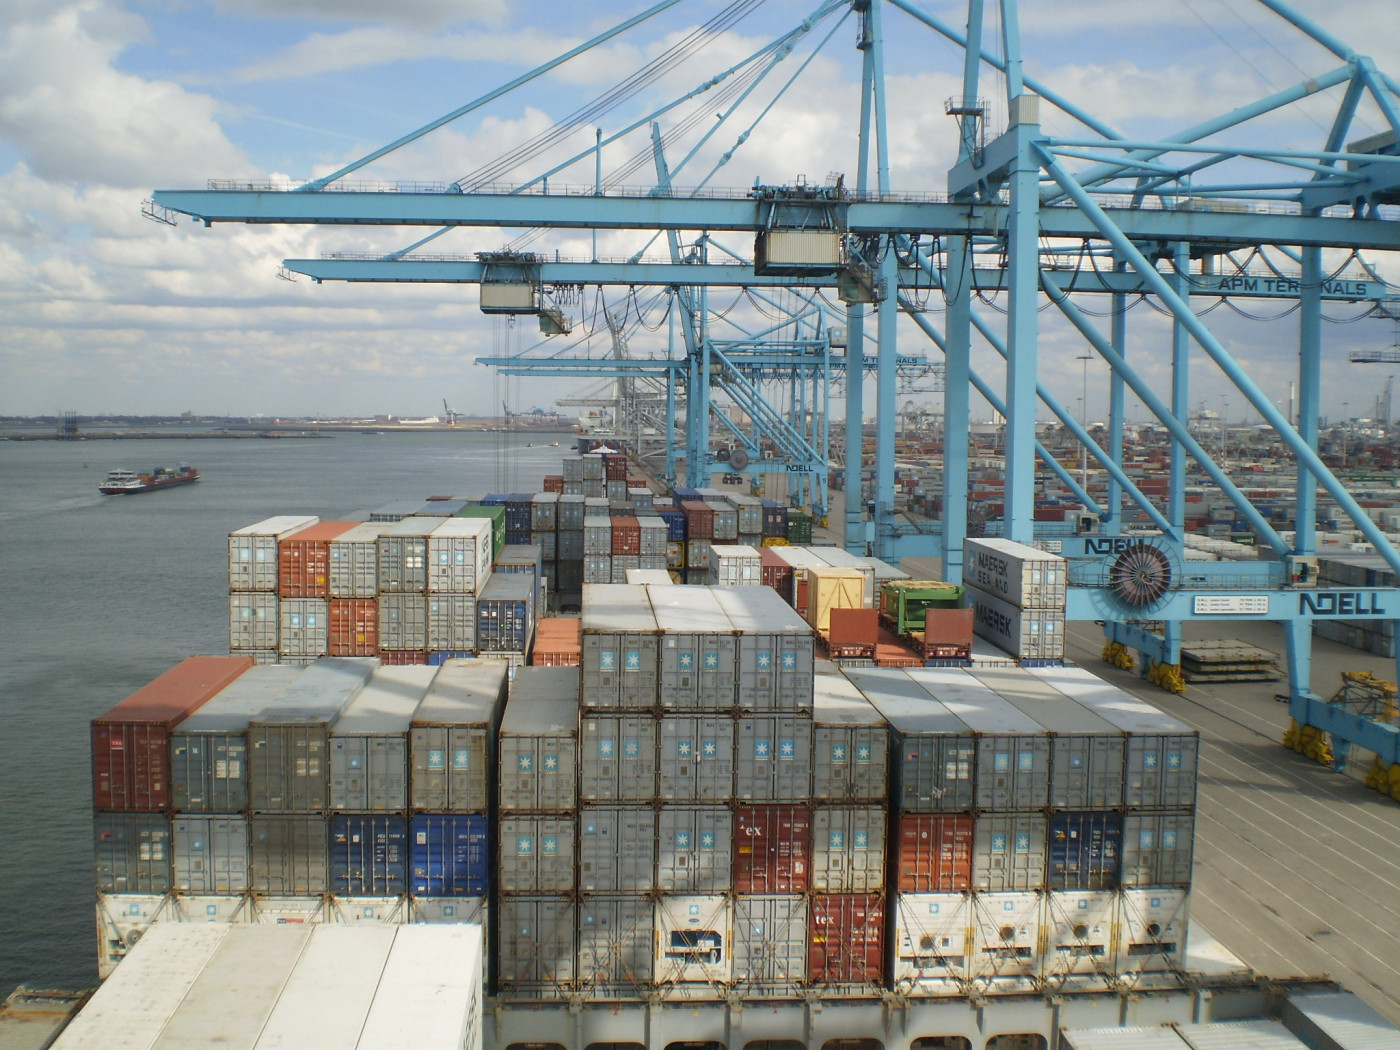 Container handling cranes view from bridge.